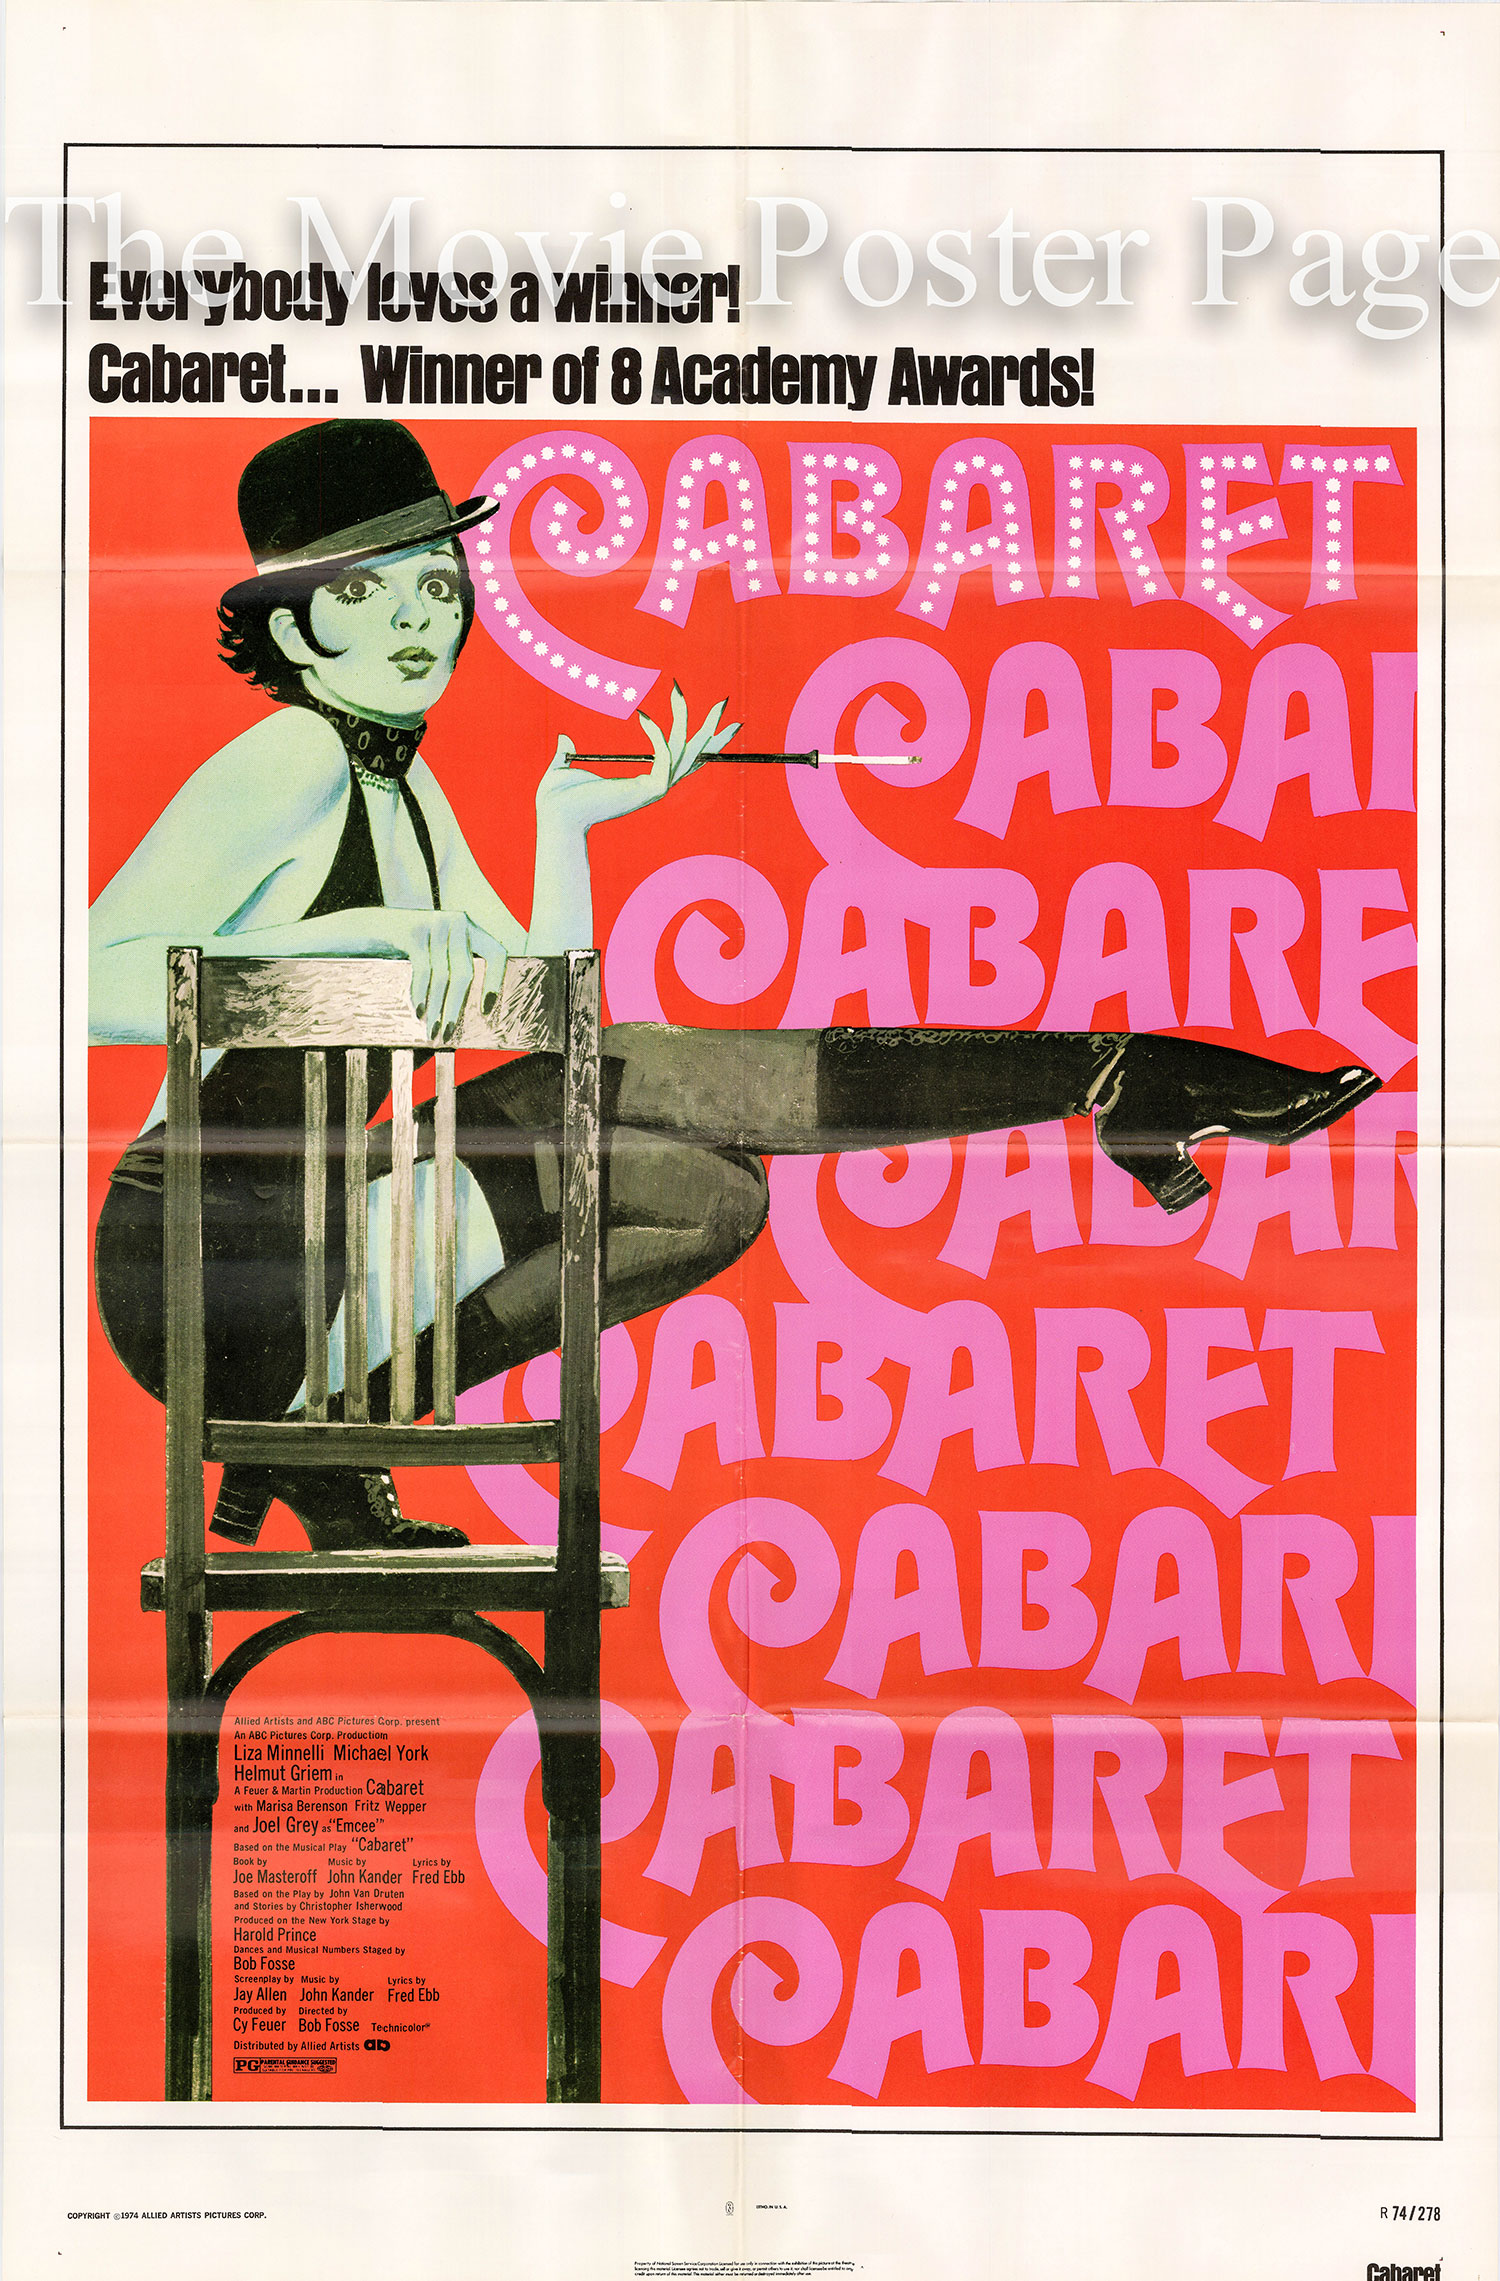 Pictured is a US promotional poster for a 1974 rerelease of the 1972 Bob Fosse film Cabaret starring Liza Minnelli.